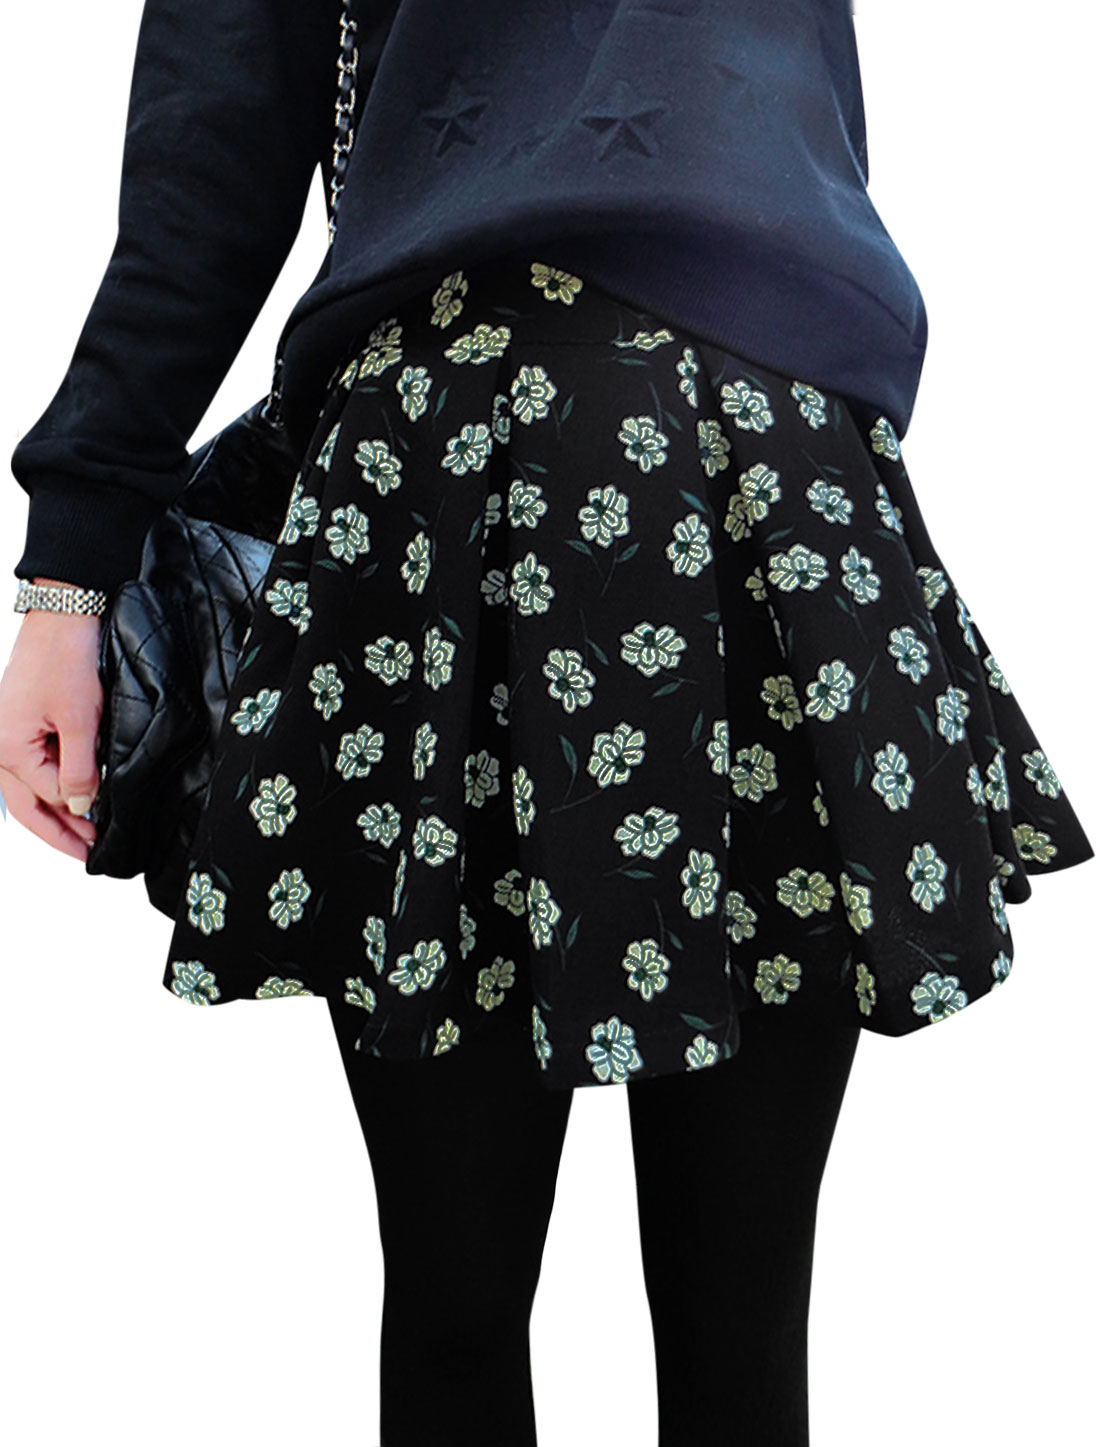 Lady Belt Loop Concealed Zipper Back Floral Prints Skirt Black S